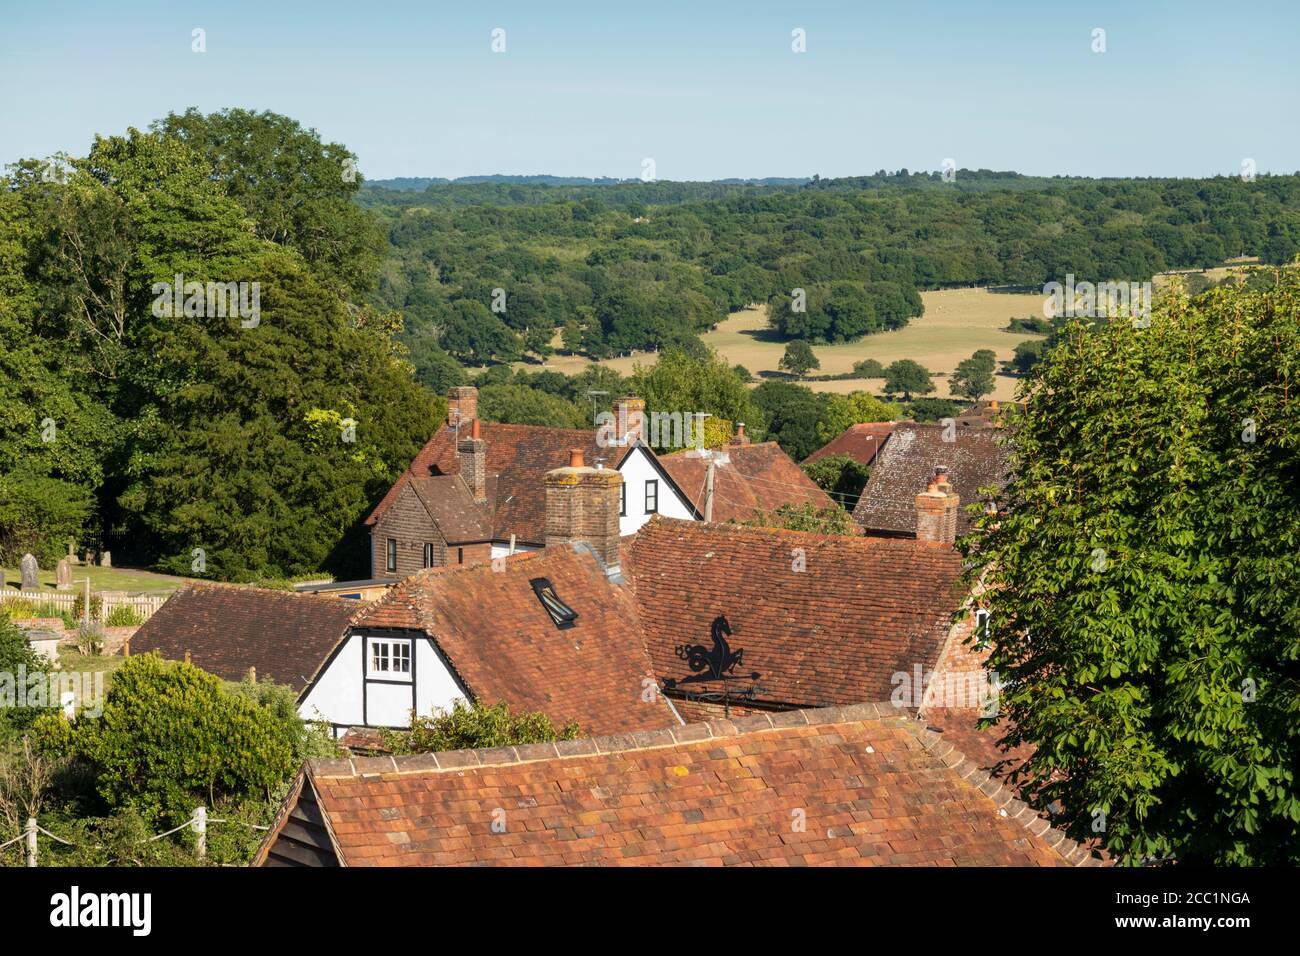 View over cottage rooftops and High Weald landscape in summer, Burwash, East Sussex, England, United Kingdom, Europe Stock Photo